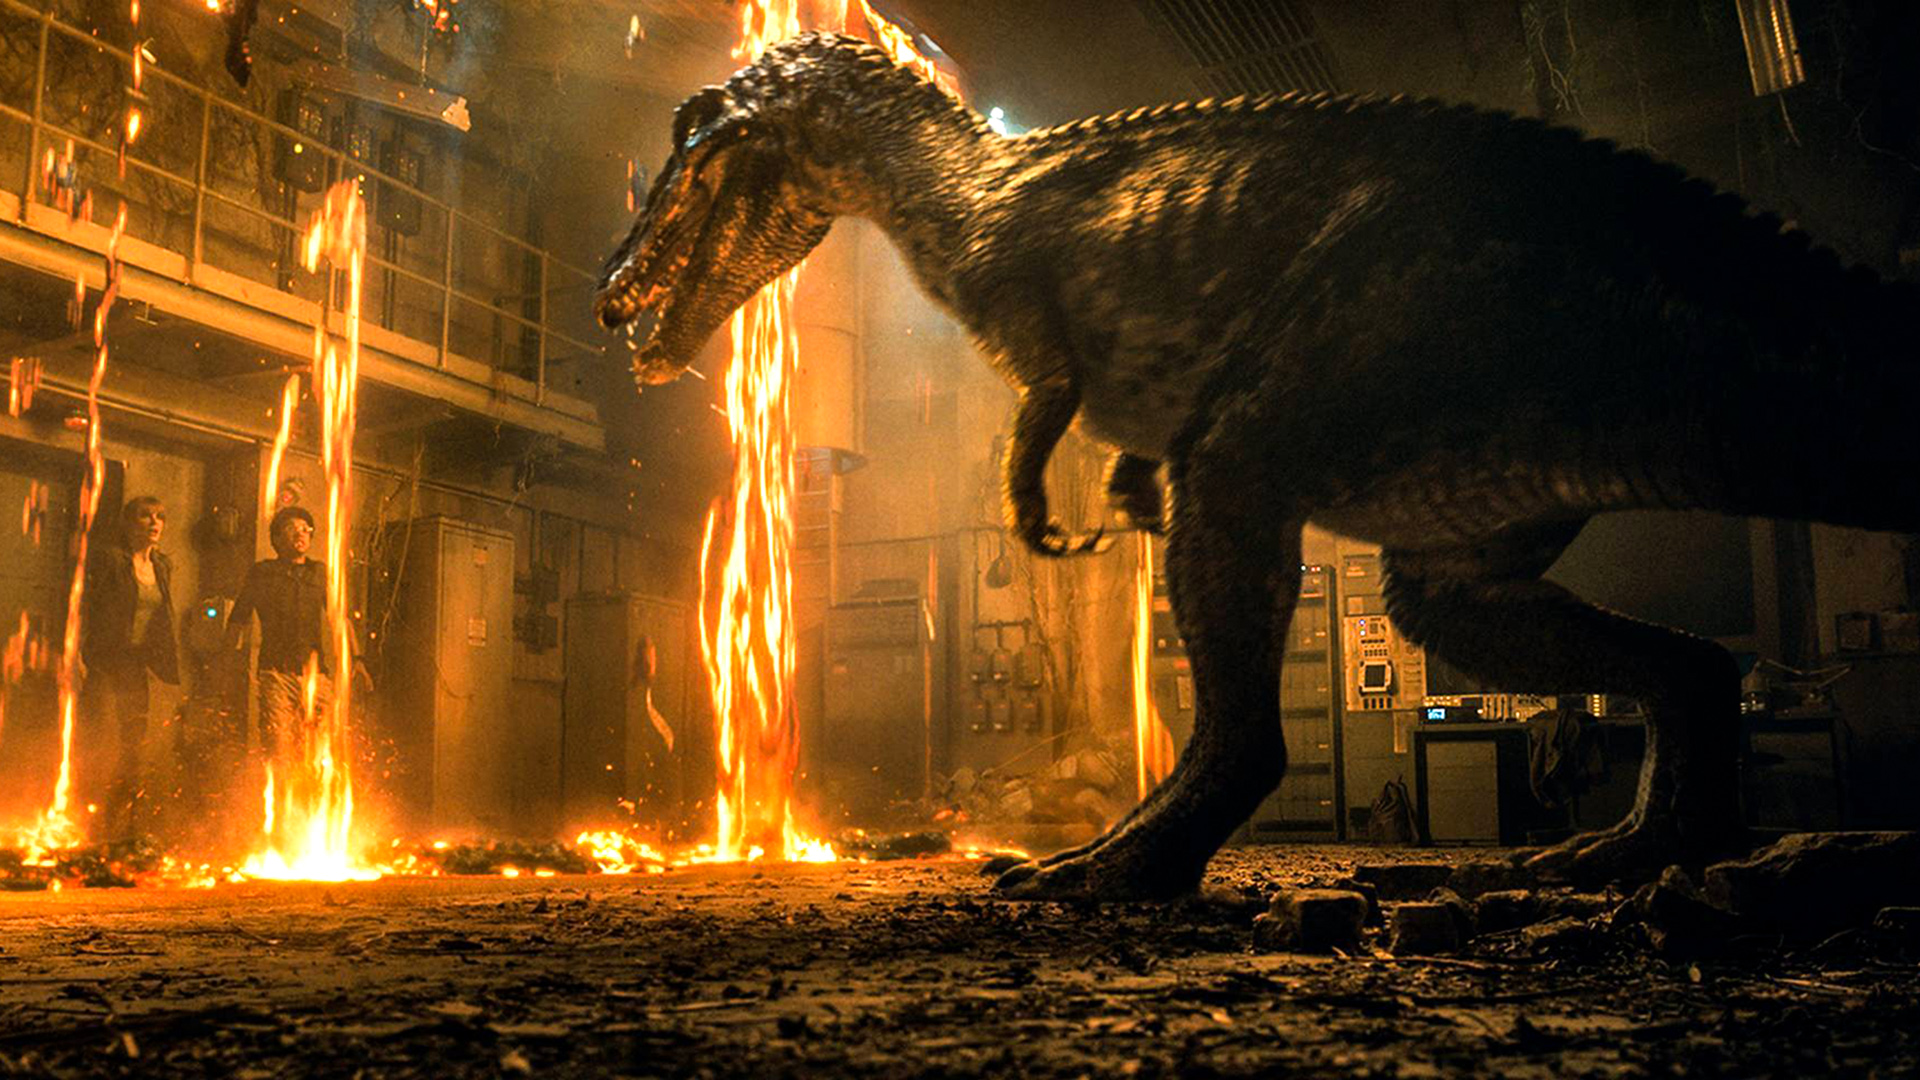 Spoilers] 'Jurassic World: Fallen Kingdom' Has the Franchise's ...